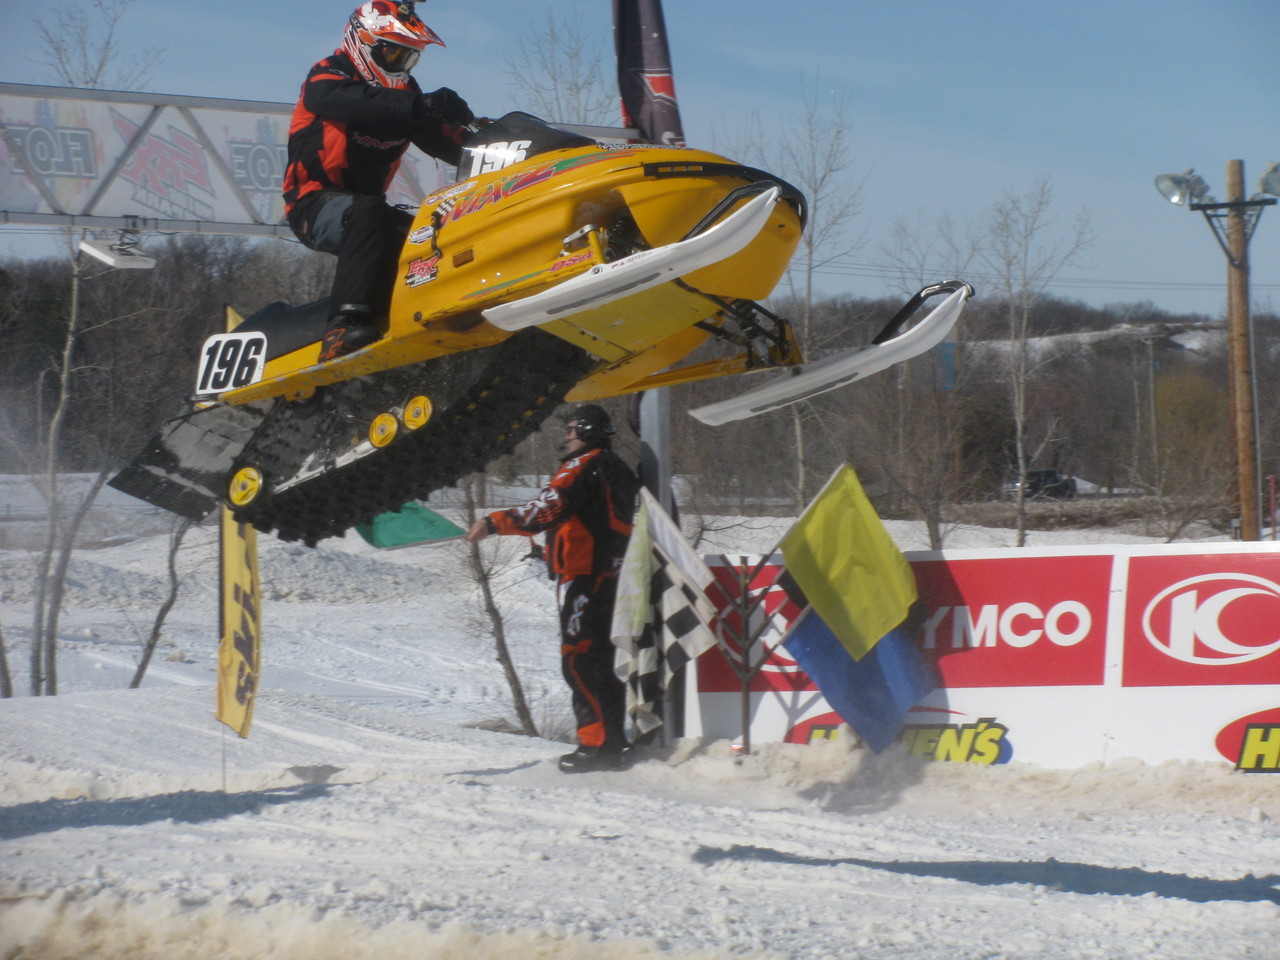 Ray Osowski getting nice air on the Plasti-Sleeve sponsored #196 Ski-Doo.